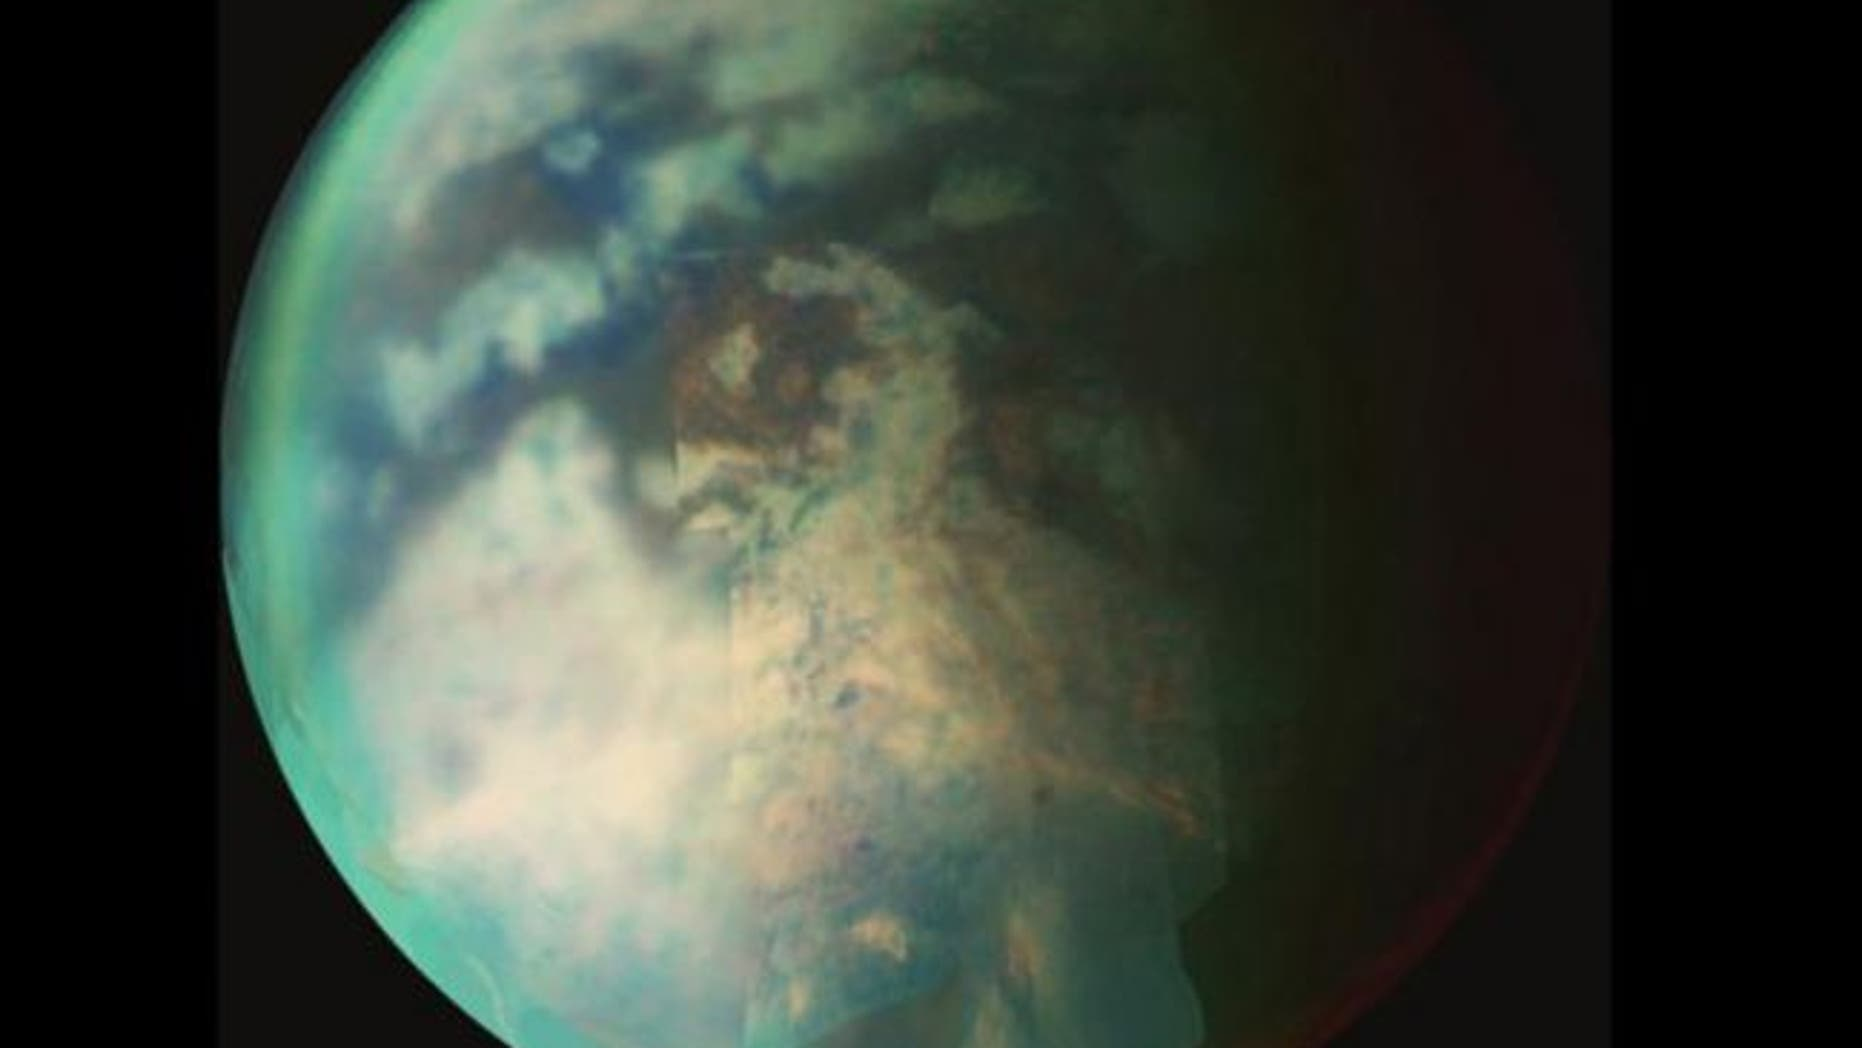 Saturn's moon Titan has a unique surface that's hard to see through its nitrogen-rich atmosphere.